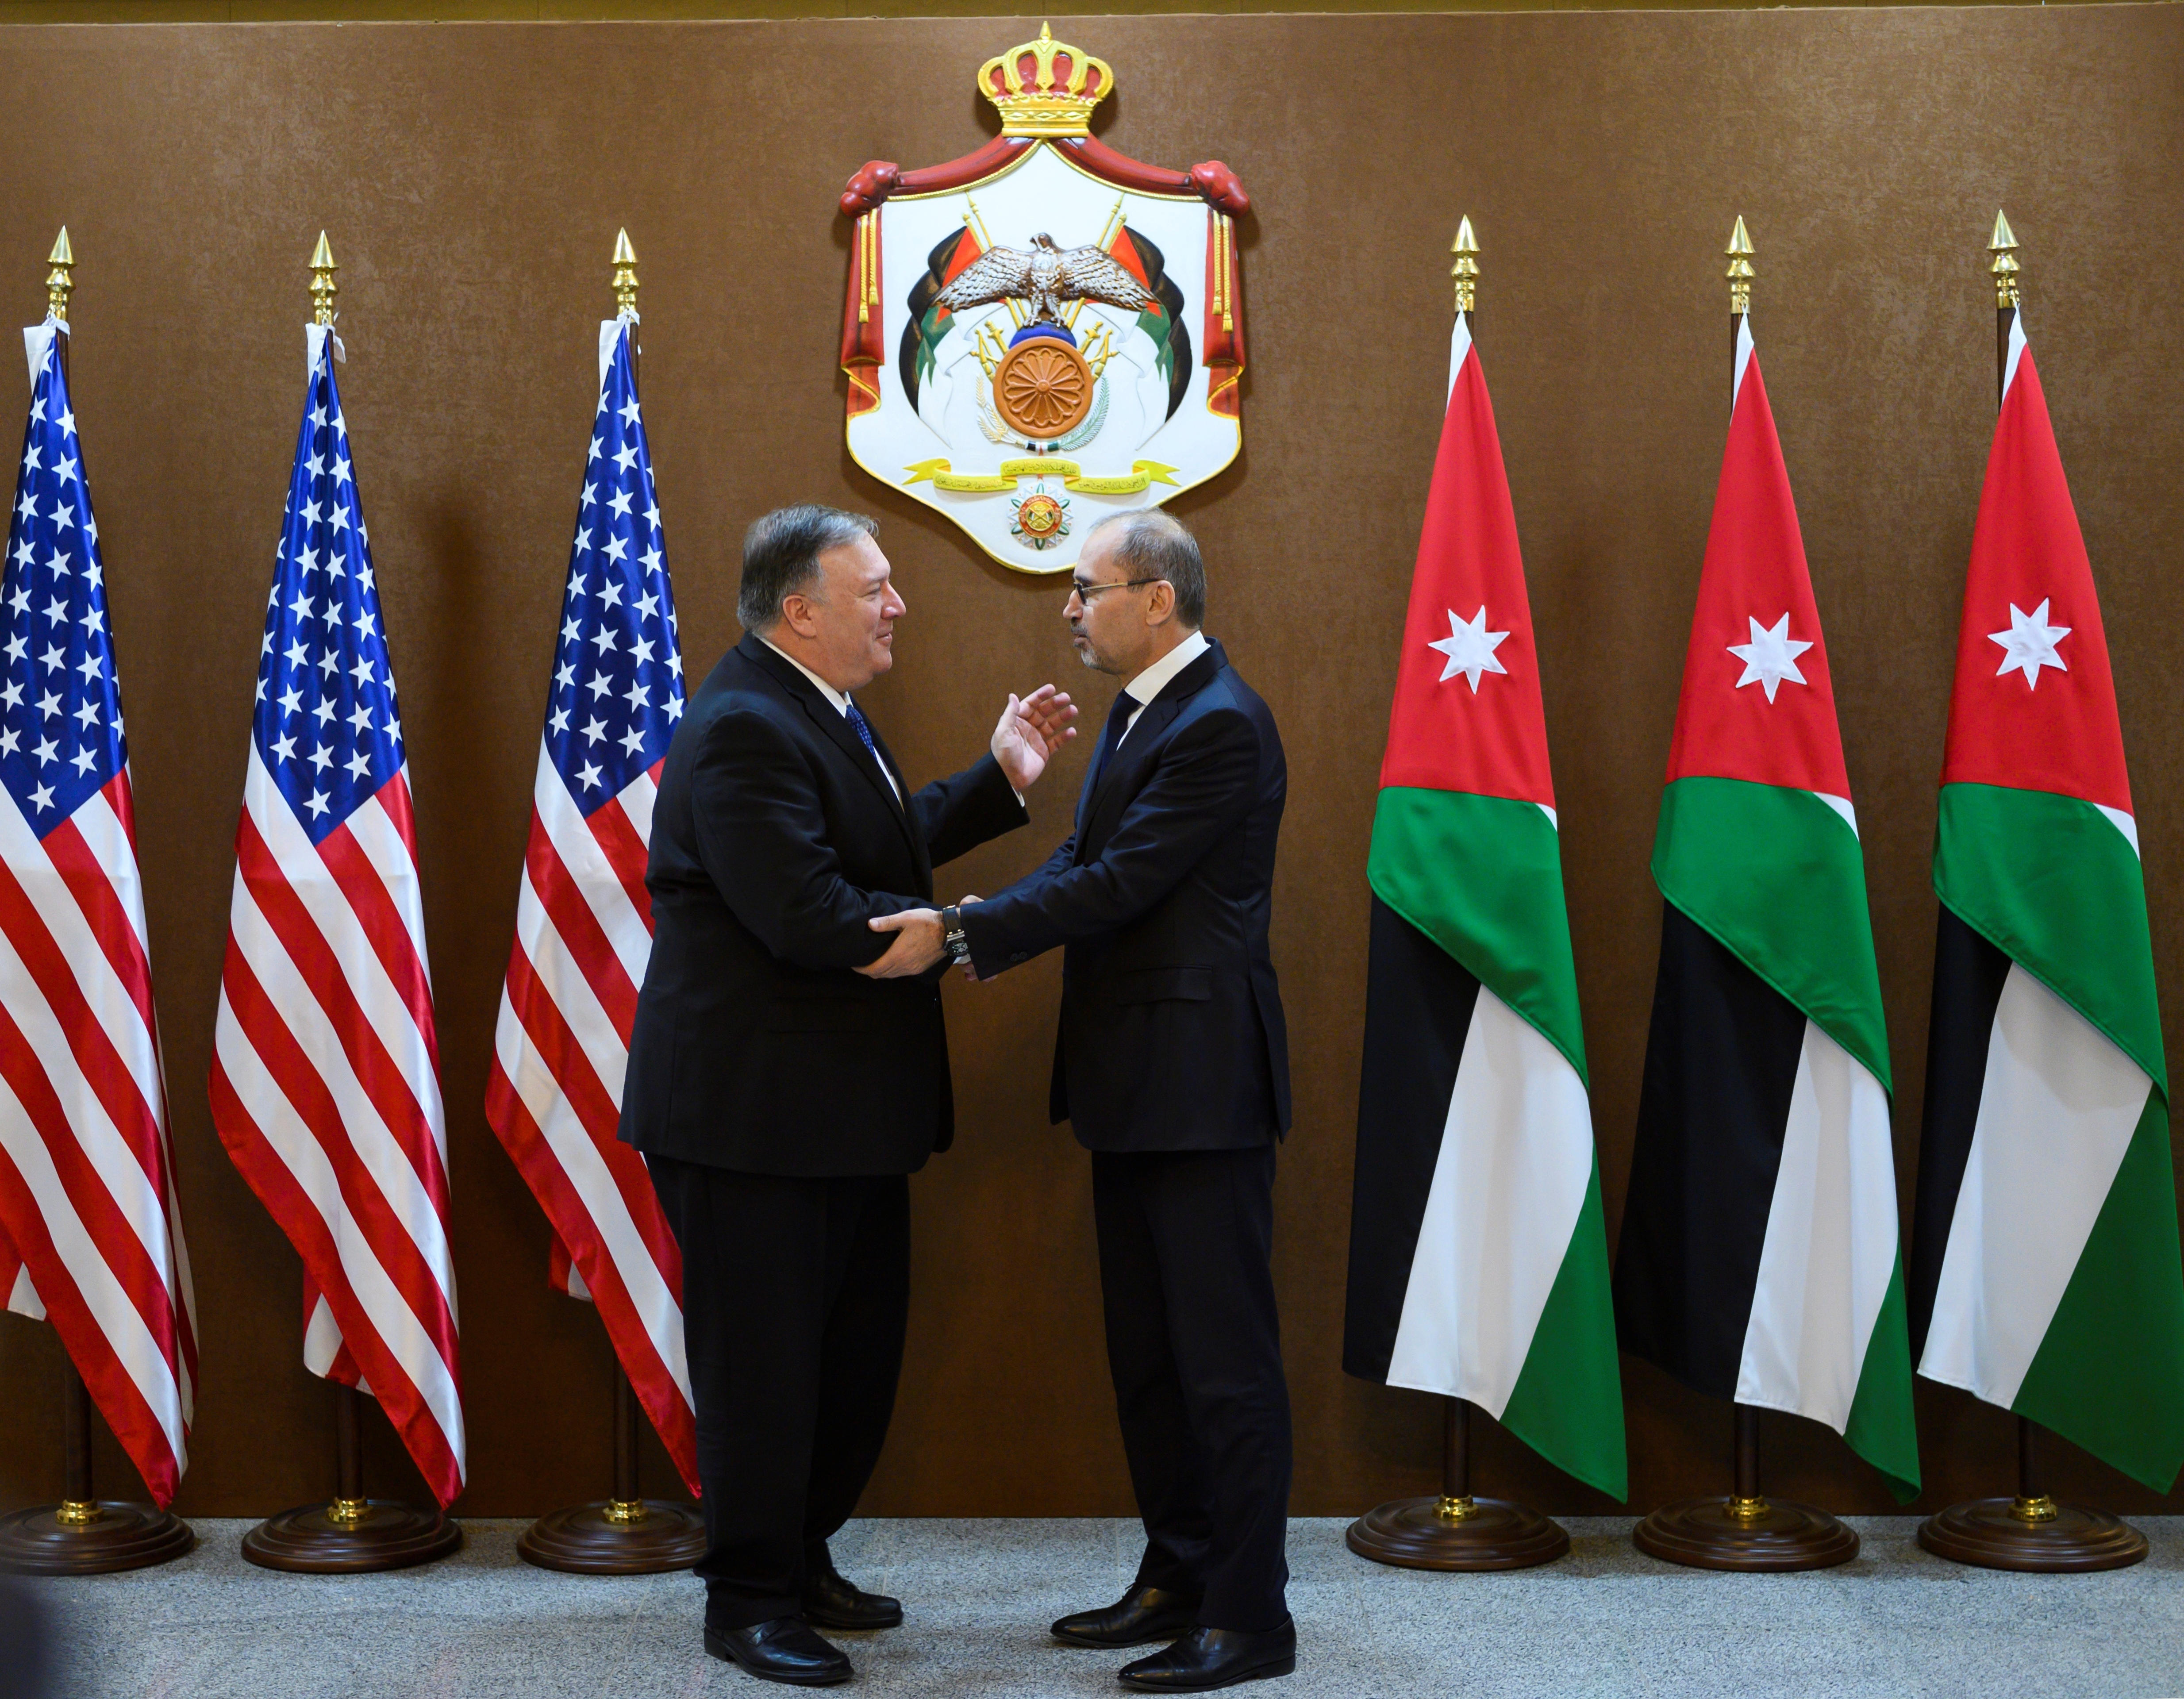 US Secretary of State Mike Pompeo meets with Jordanian Foreign Minister Ayman Safadi, Amman, January 8, 2019.